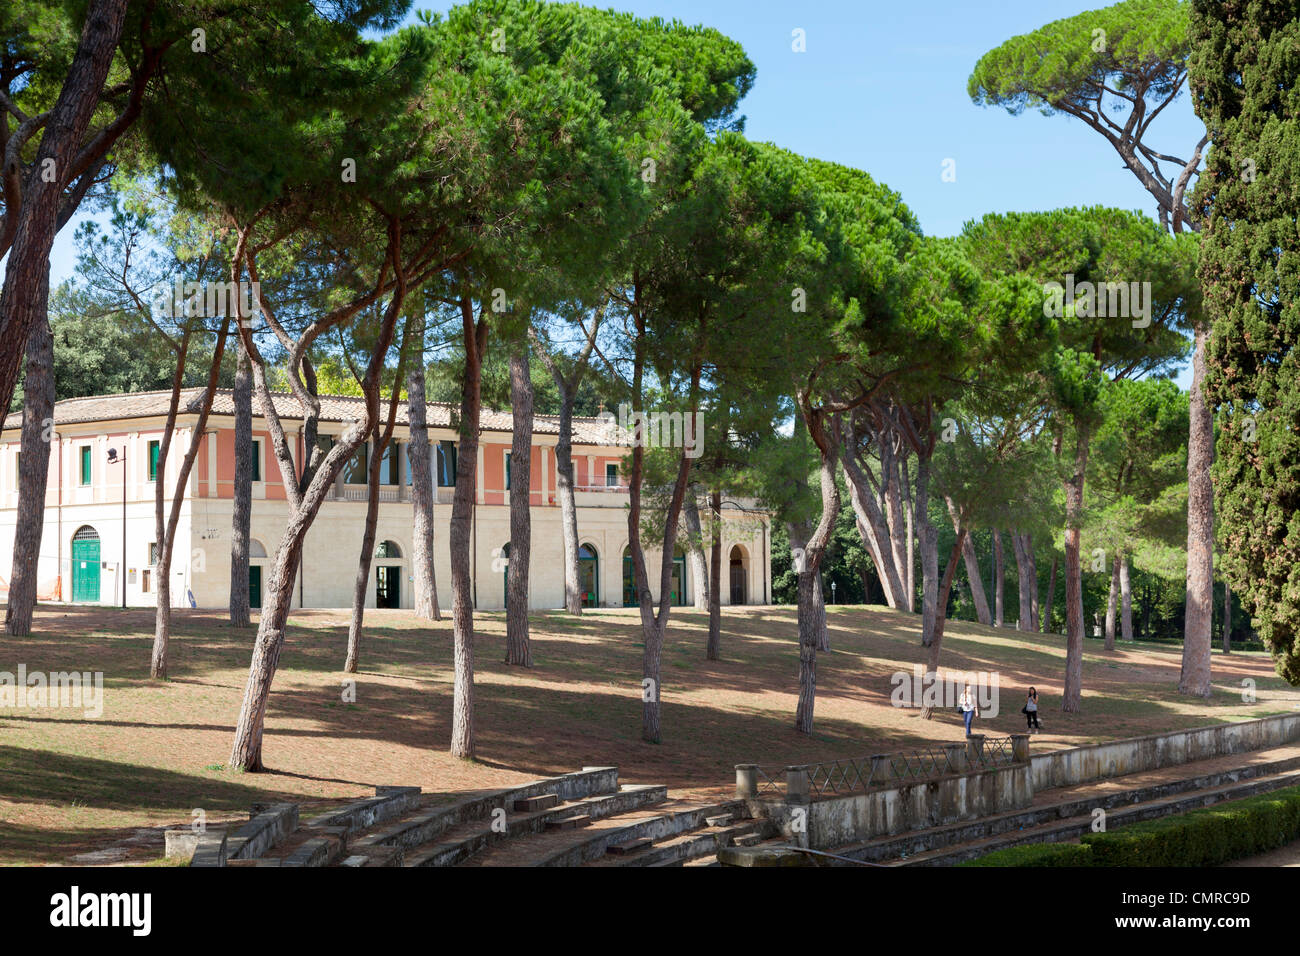 Stables alongside Piazza di Siena in borghese gardens in Rome - Stock Image